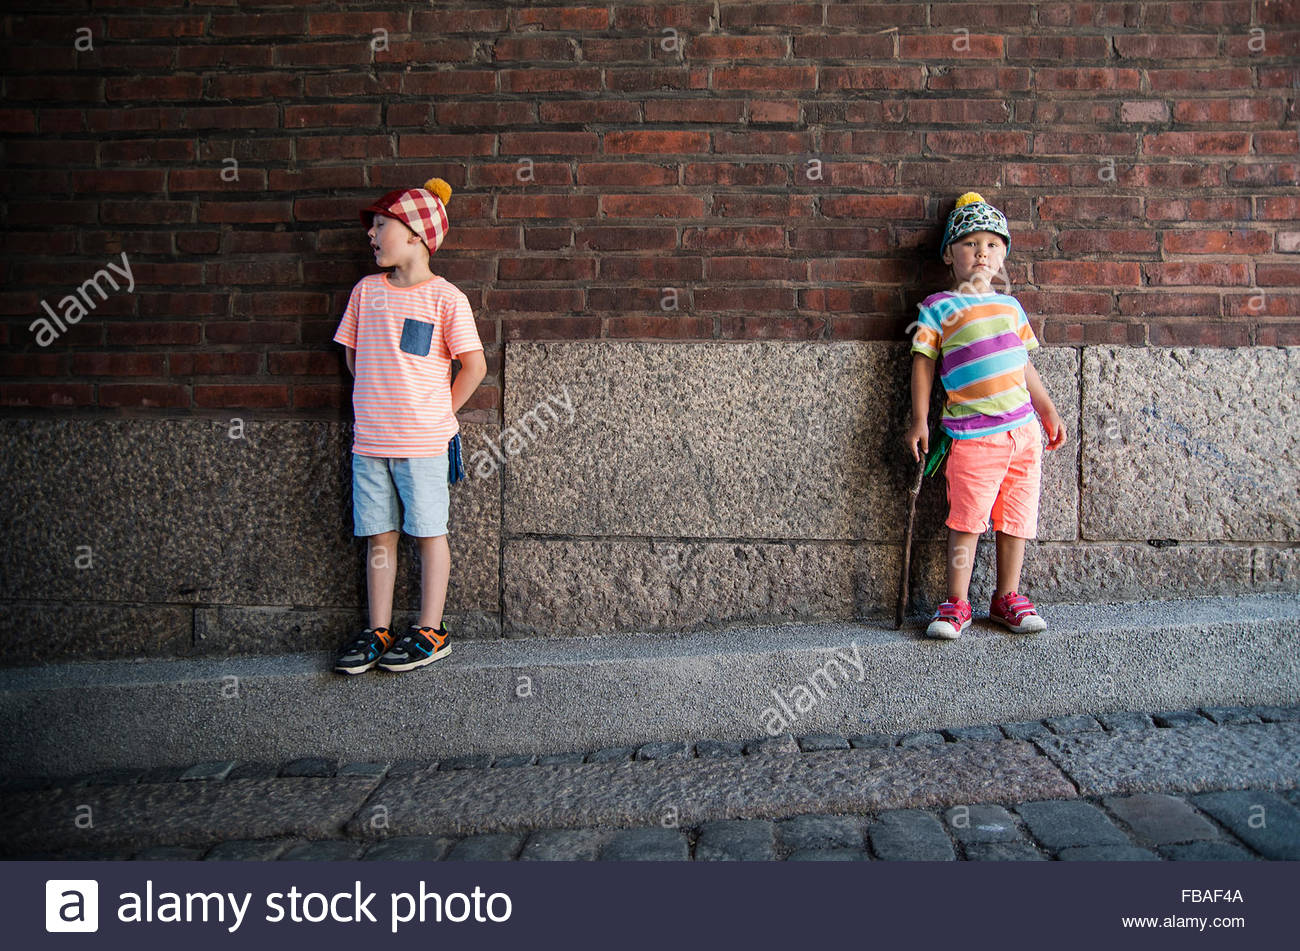 Finland, Helsinki, Boys (4-5) standing against brick wall - Stock Image